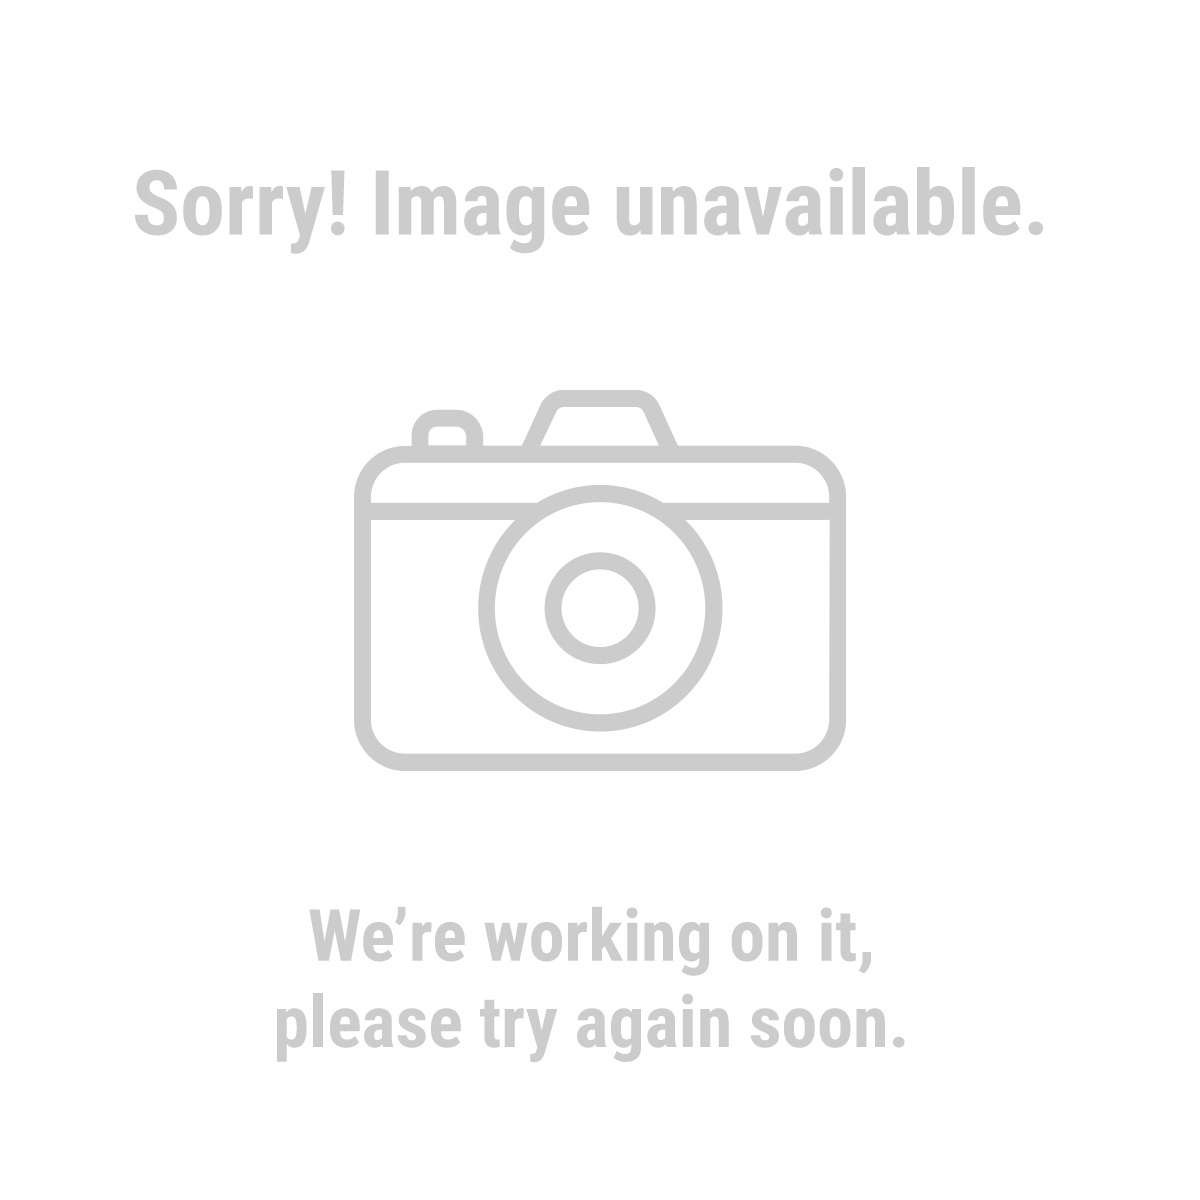 Pittsburgh Automotive 60278 12 Ft. 8 Gauge Jumper Cables with Inline Battery Tester